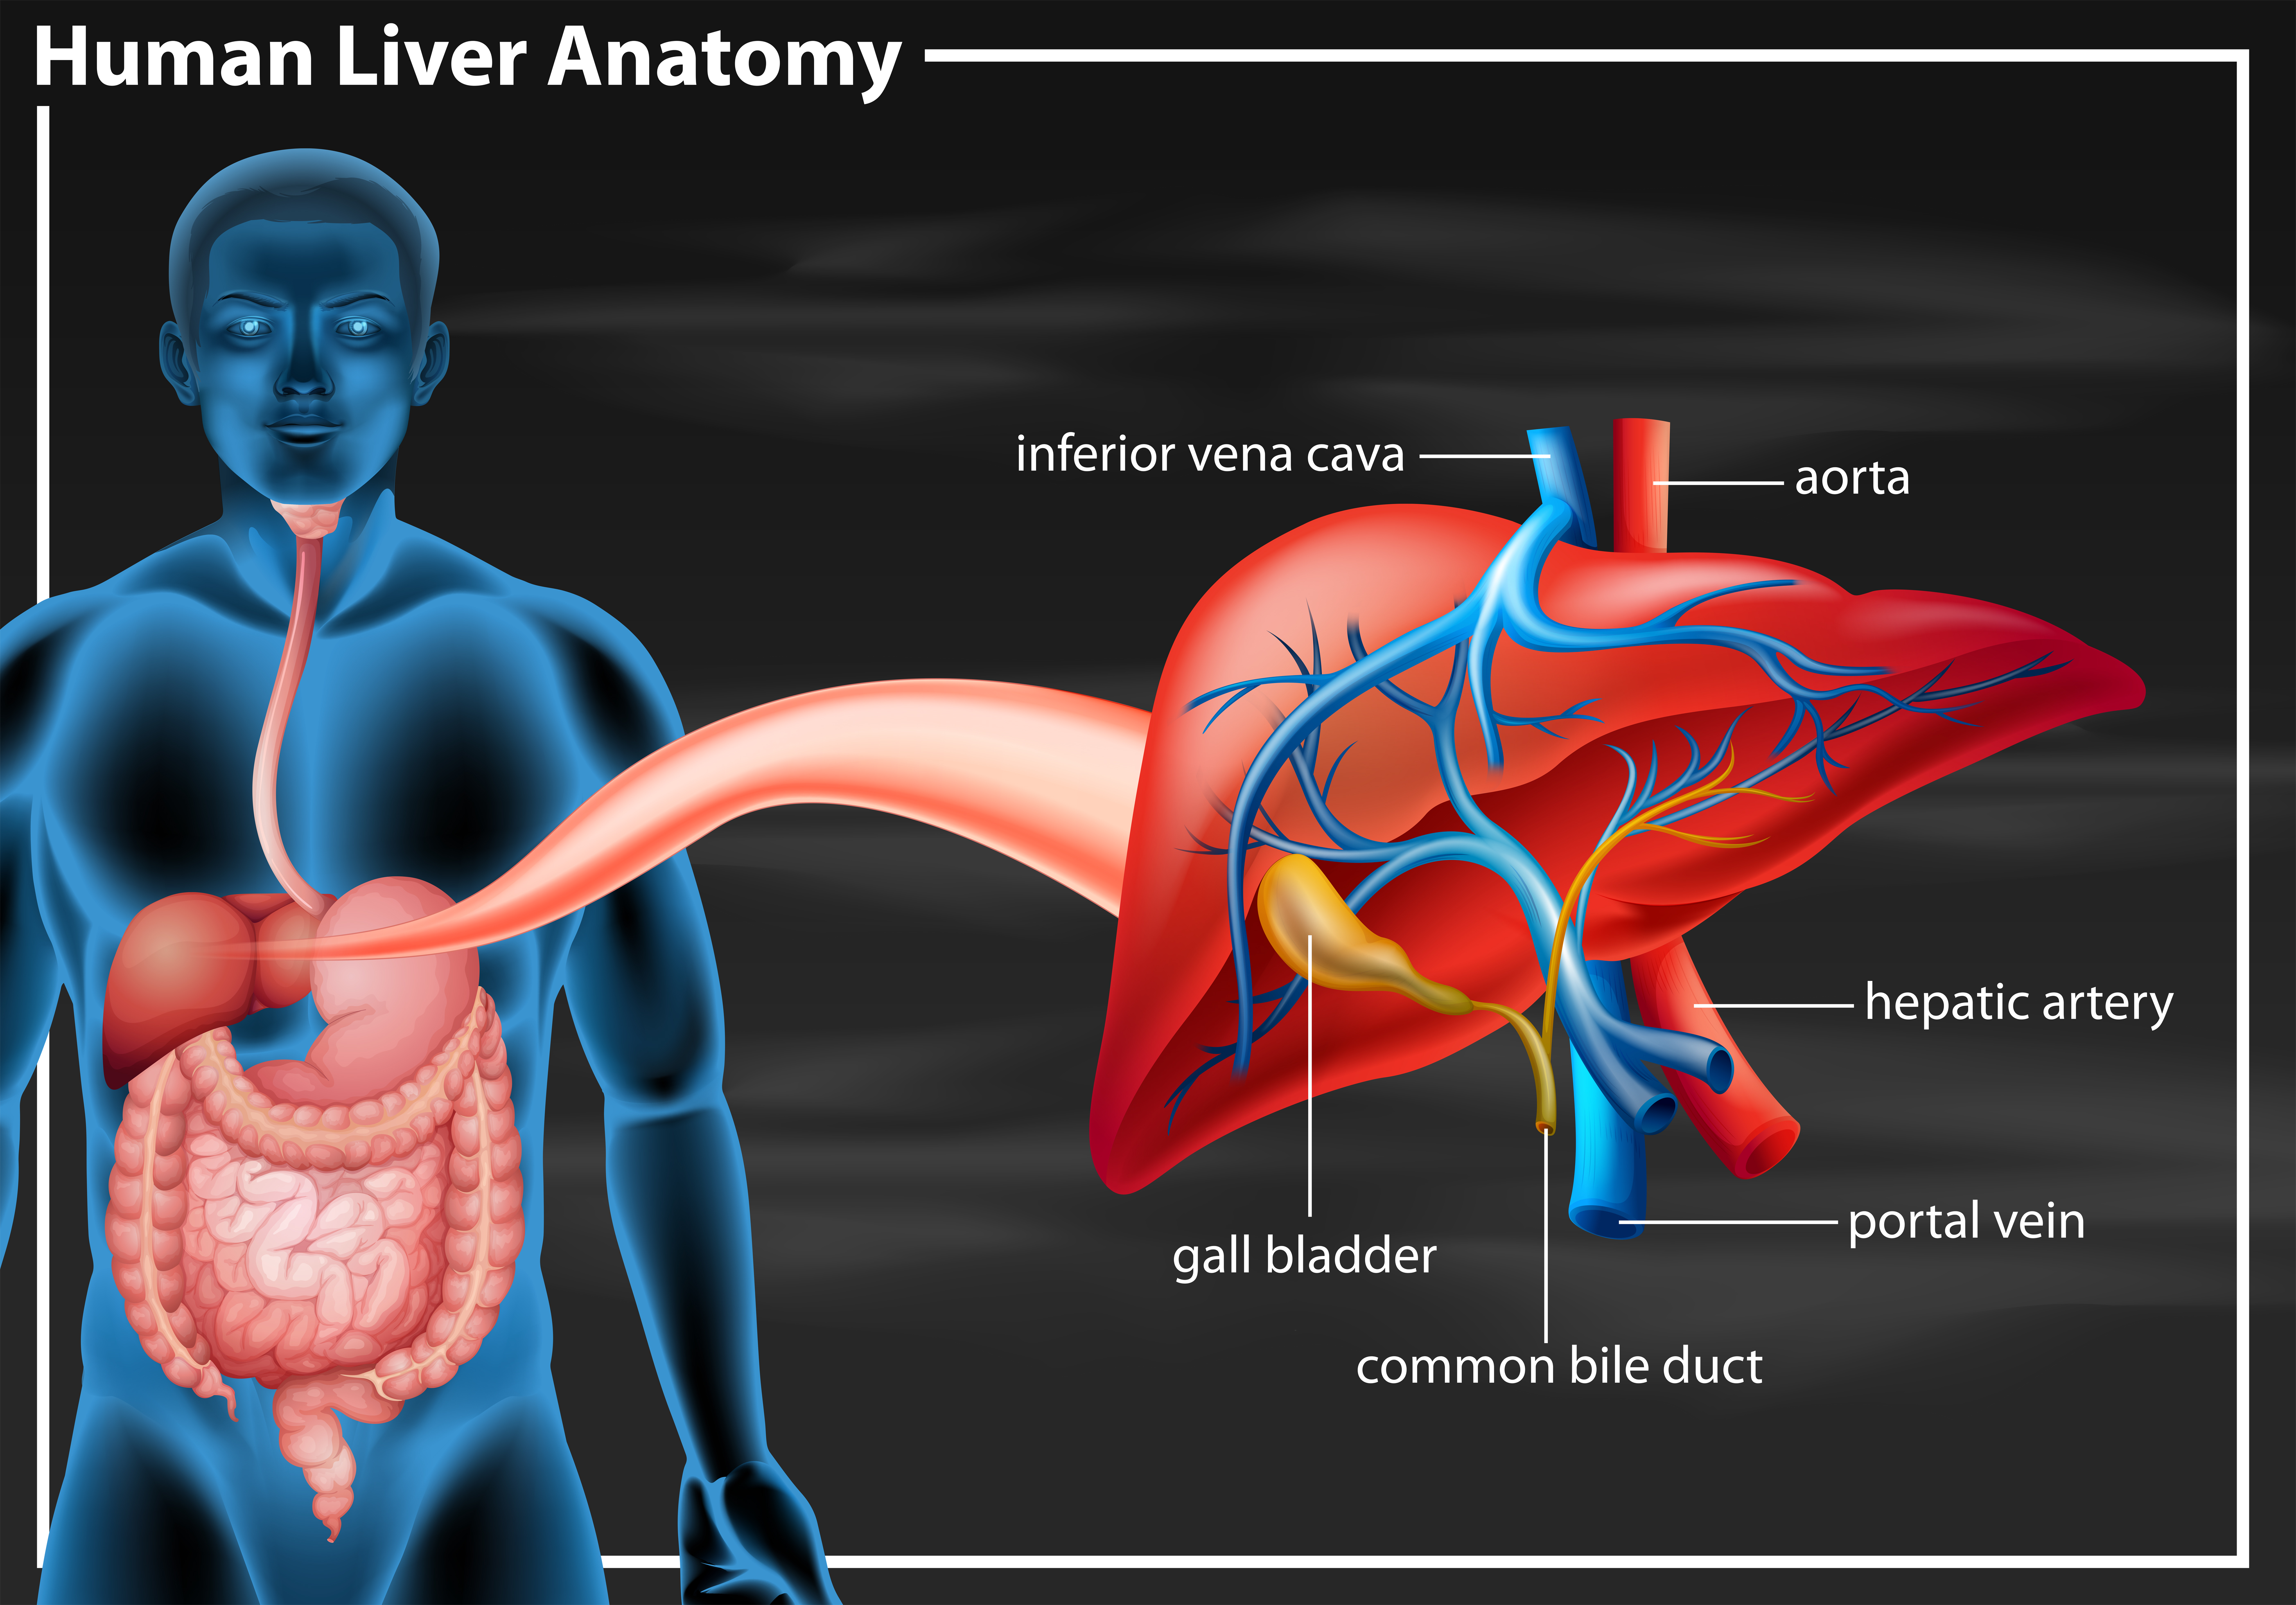 Human liver    anatomy       diagram     Download Free Vectors  Clipart Graphics   Vector Art